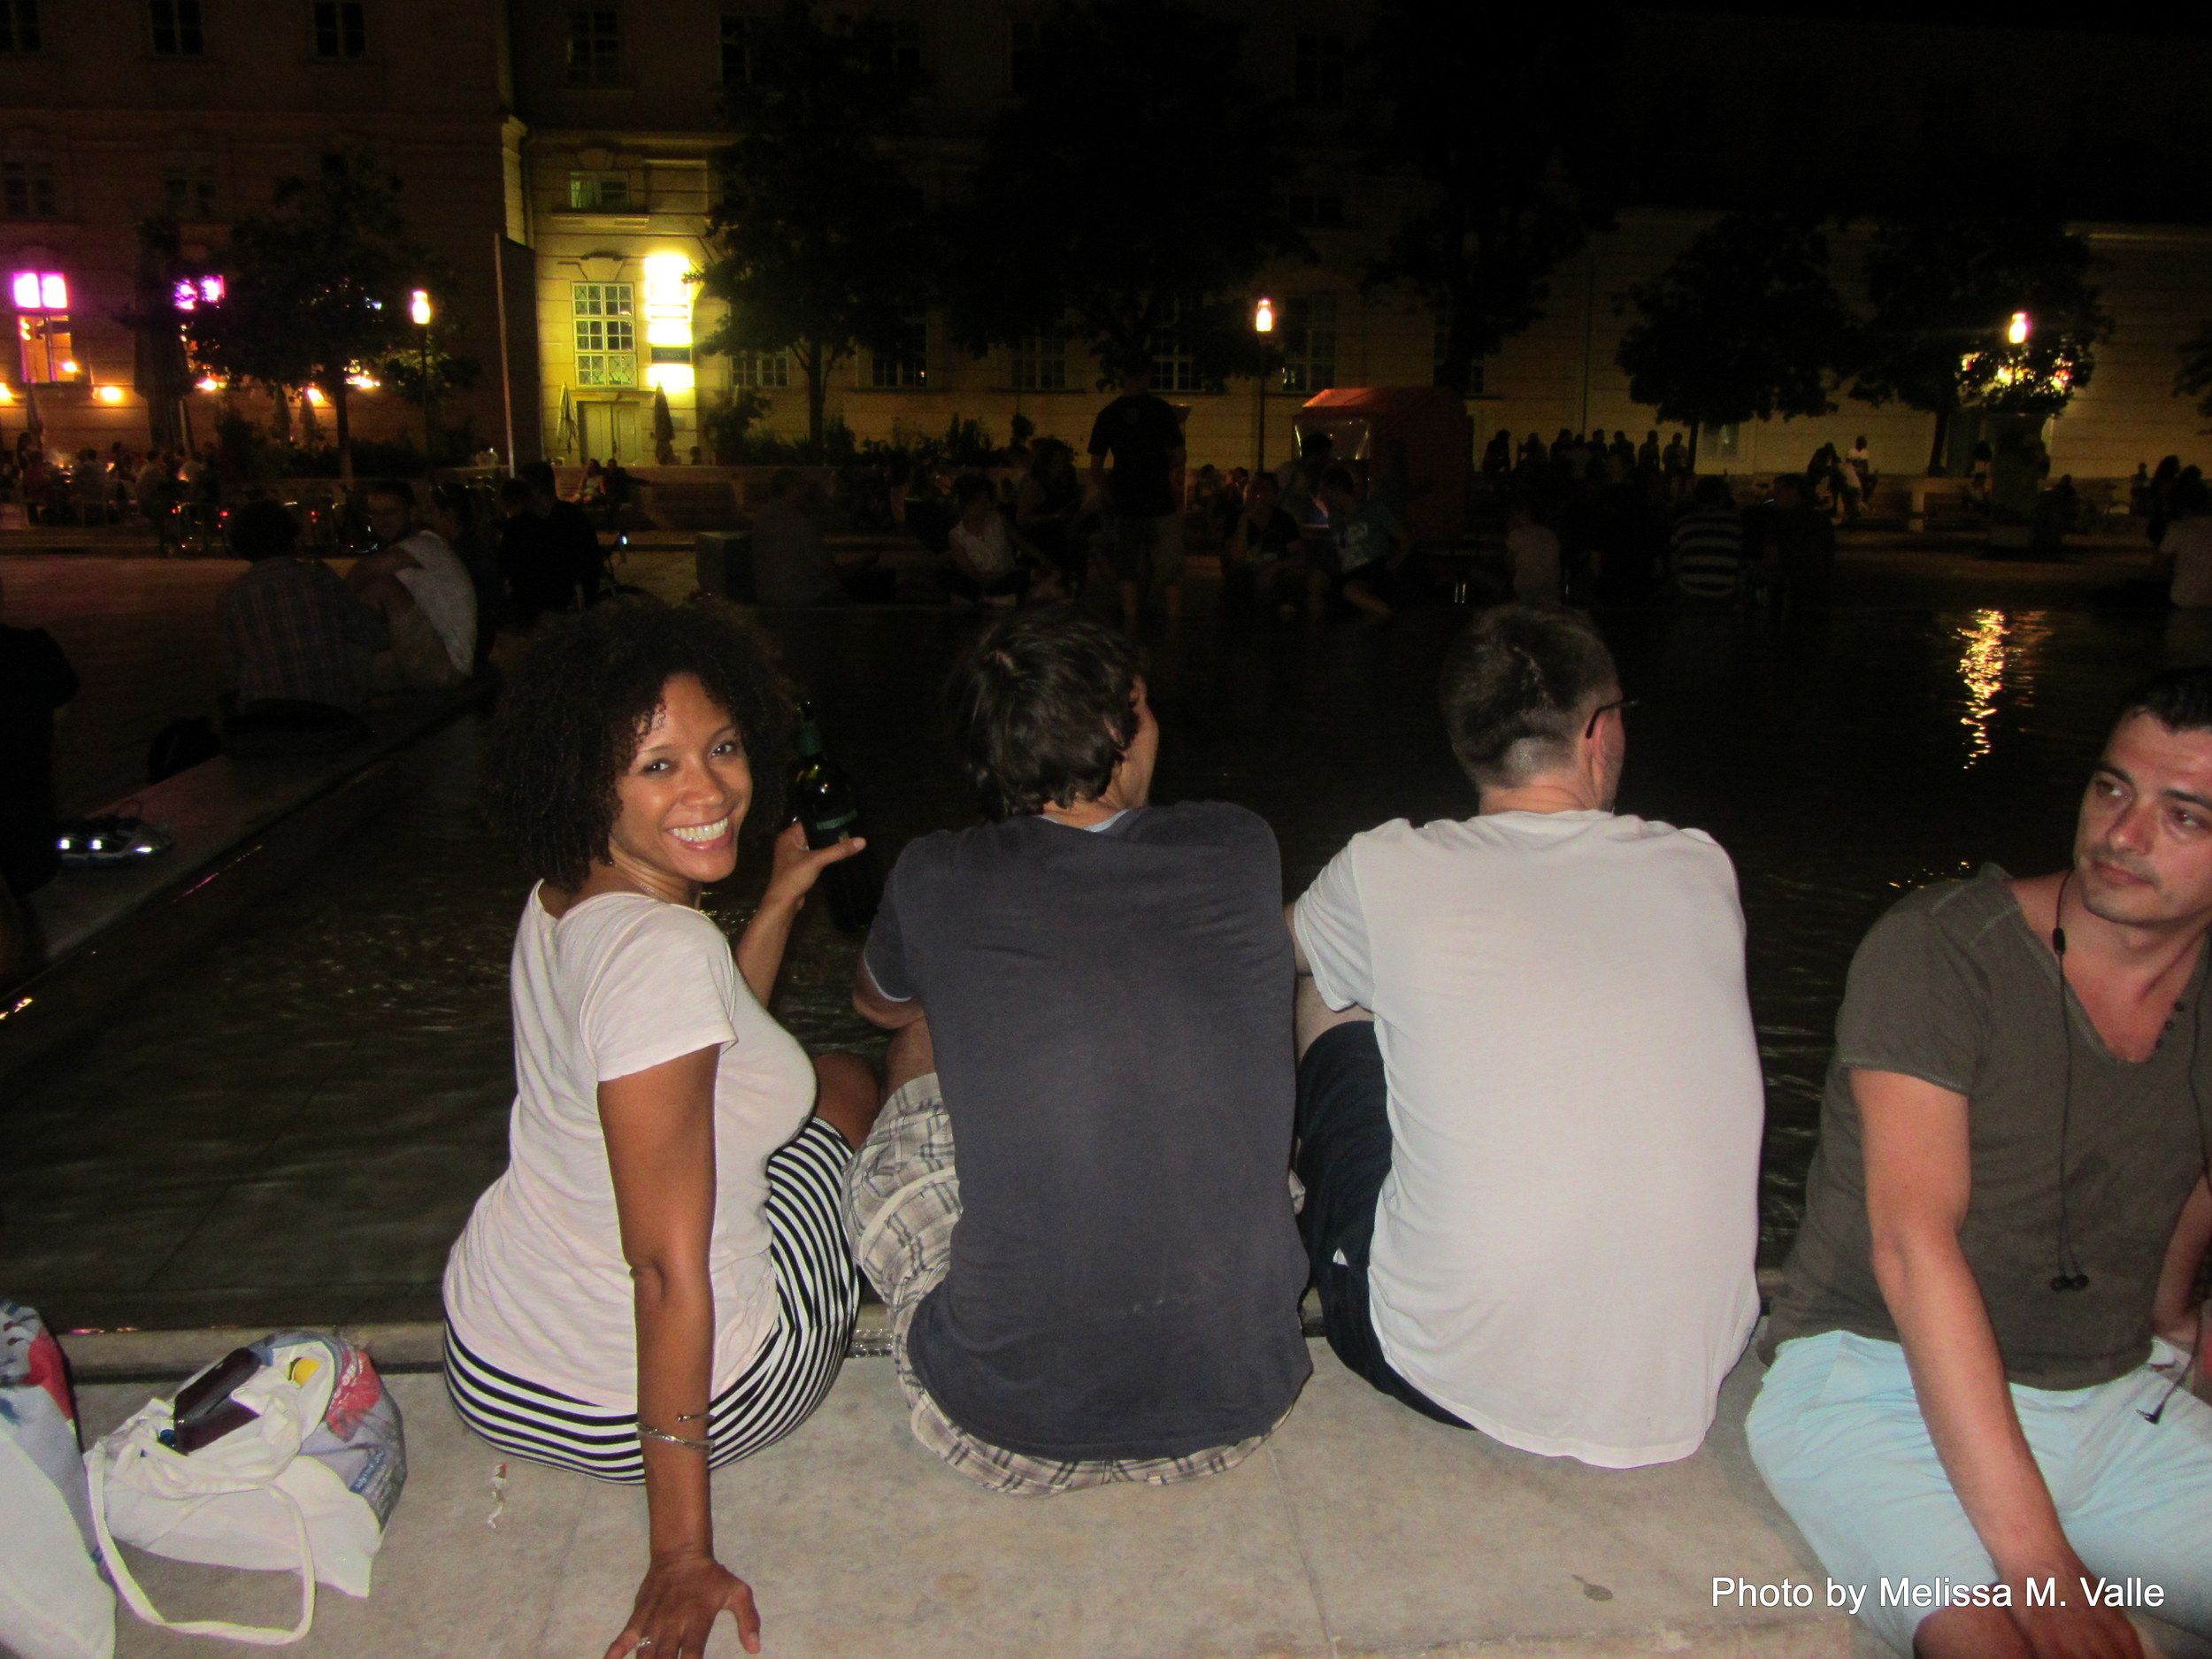 7.7.14 Vienna, Austria-wining it up in Museum Quartier after Amin lecture (7).JPG